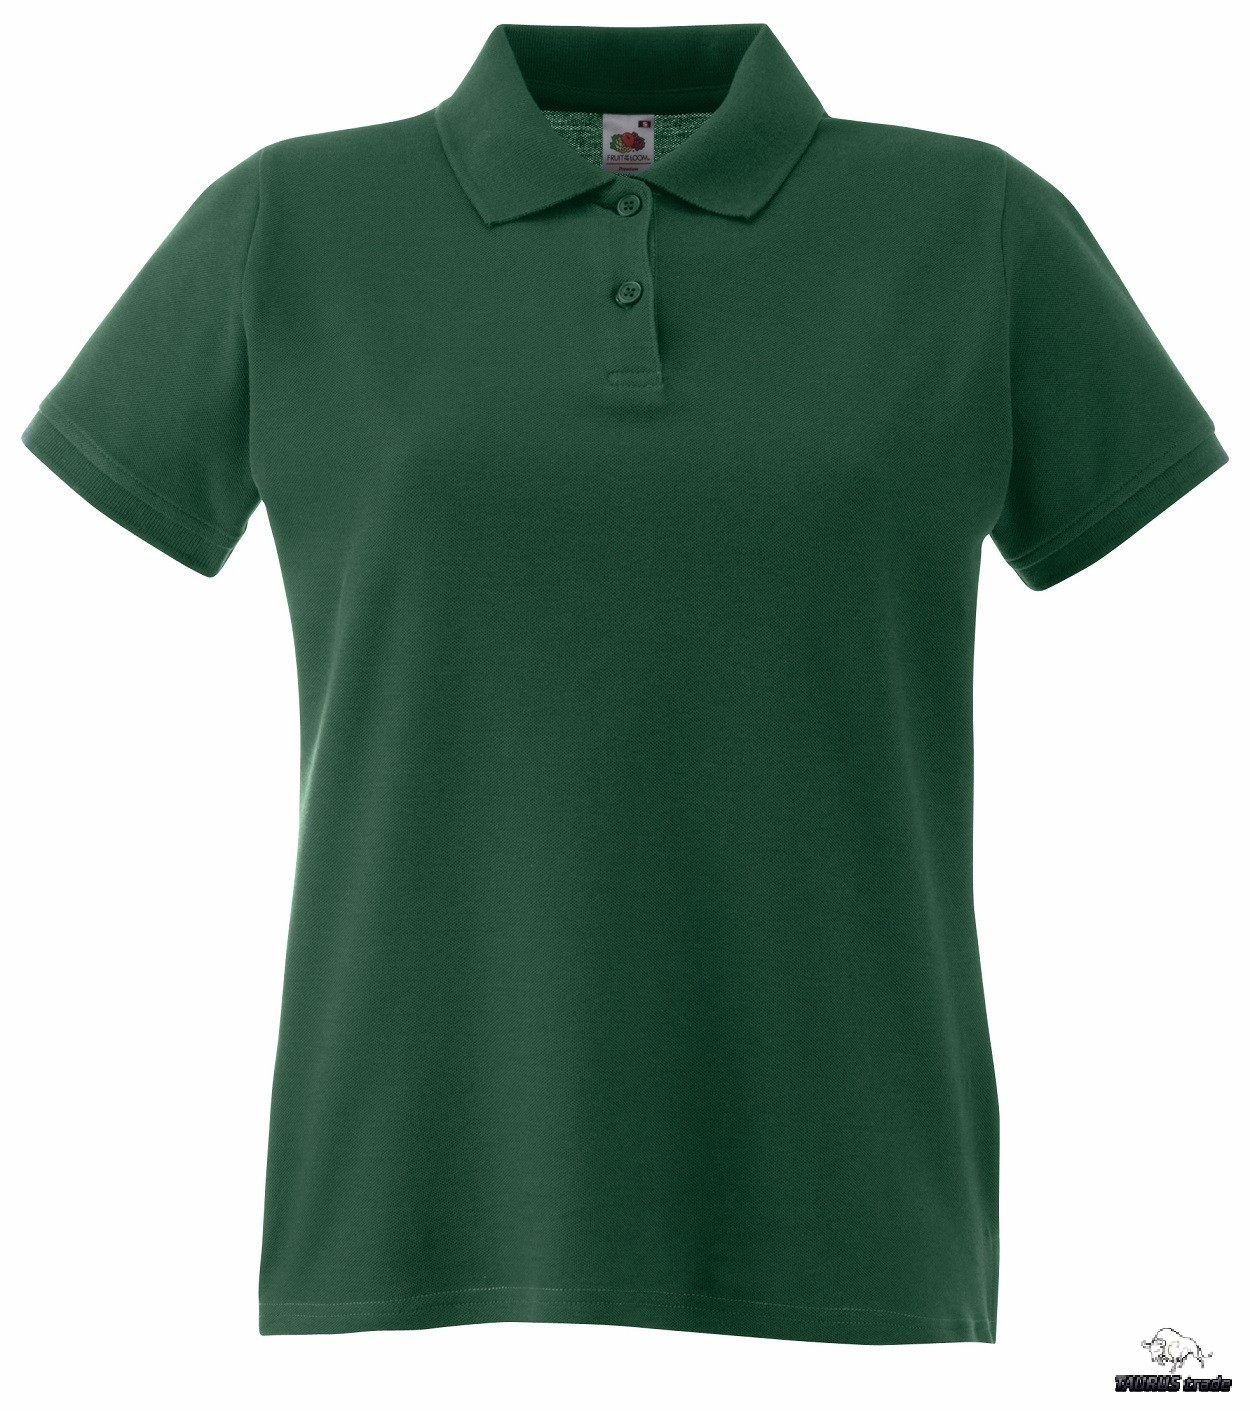 63-030-forest green